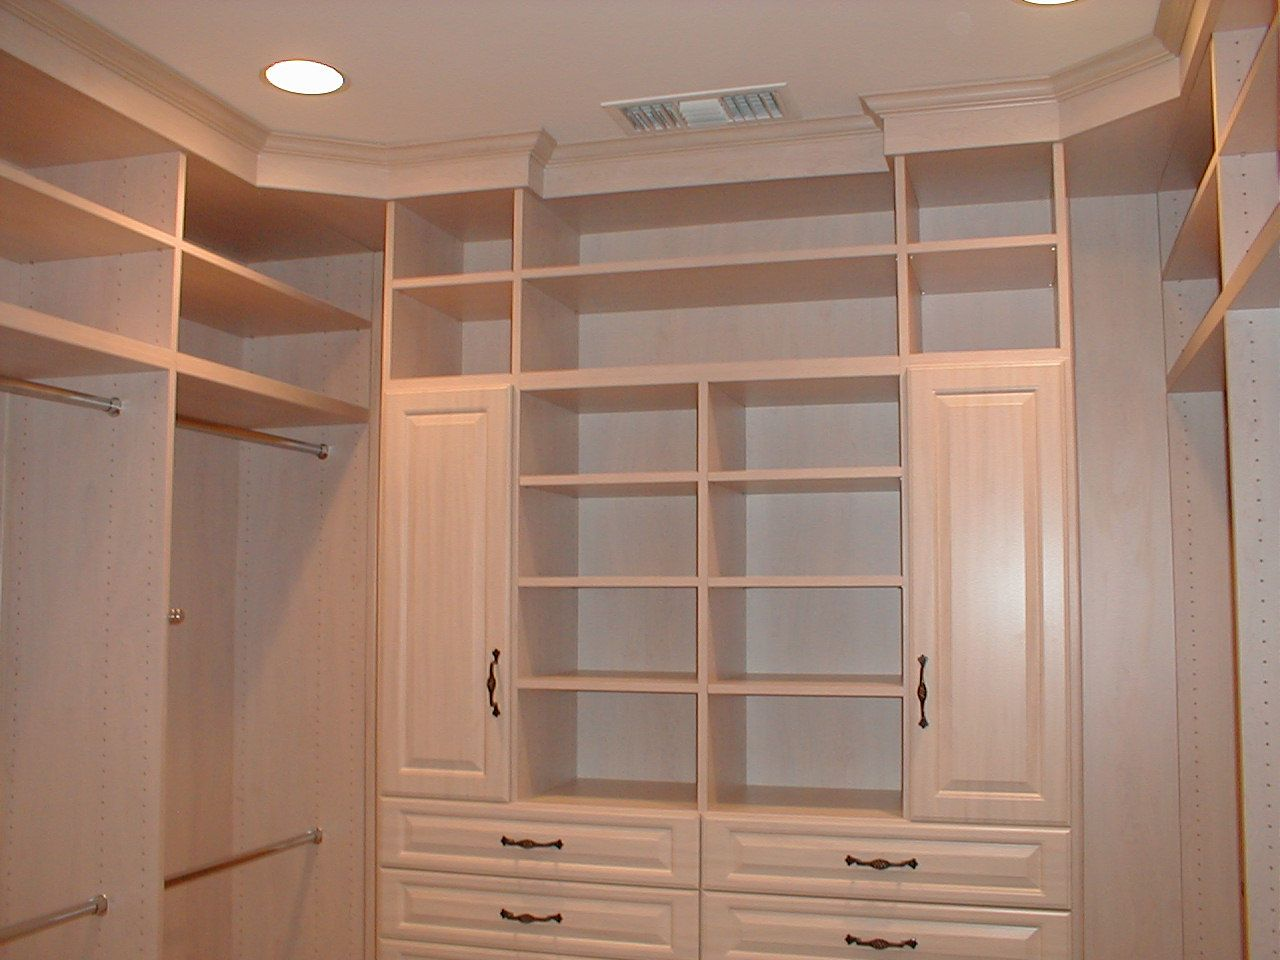 Charming white wardrobe storage organizations walk in closet i like this finish on Master bedroom wardrobe design idea